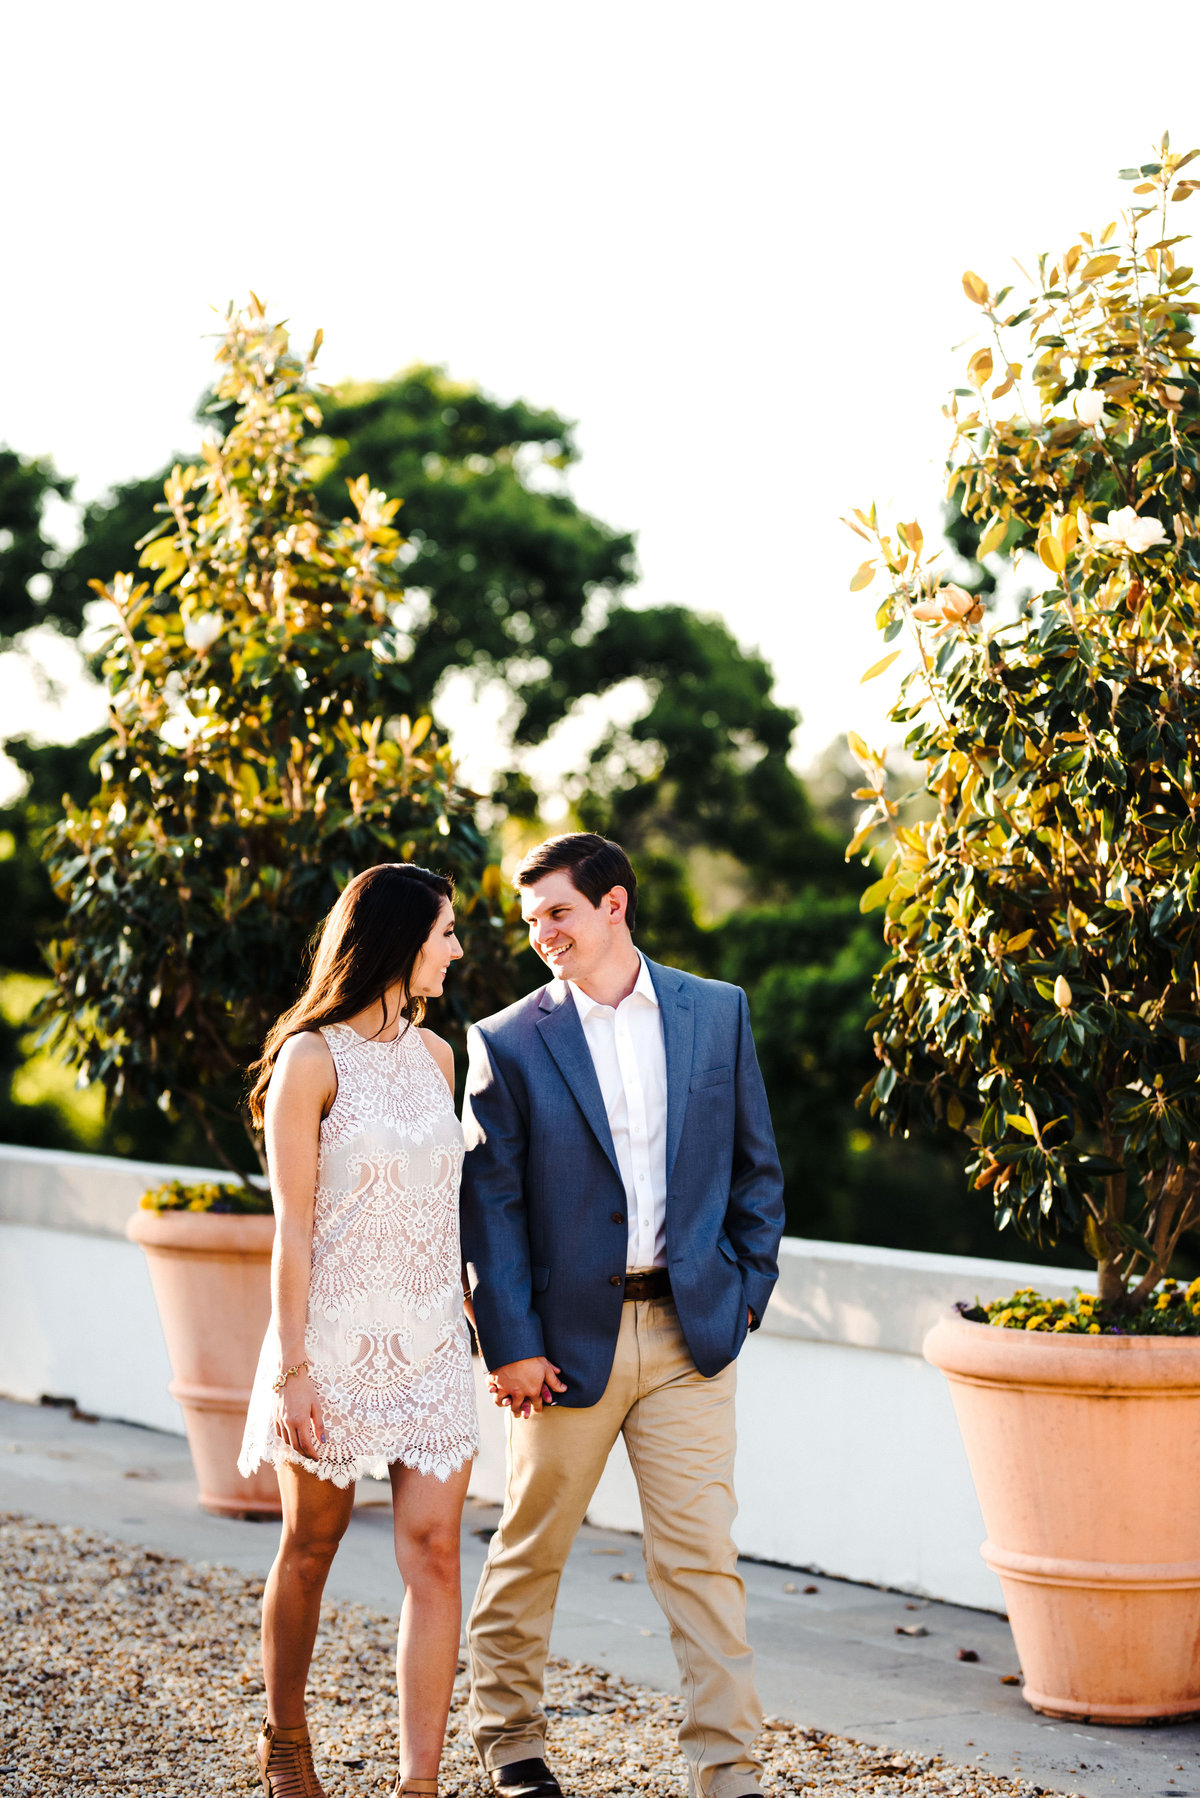 Hills and Dales Estate Engagement Session - 59